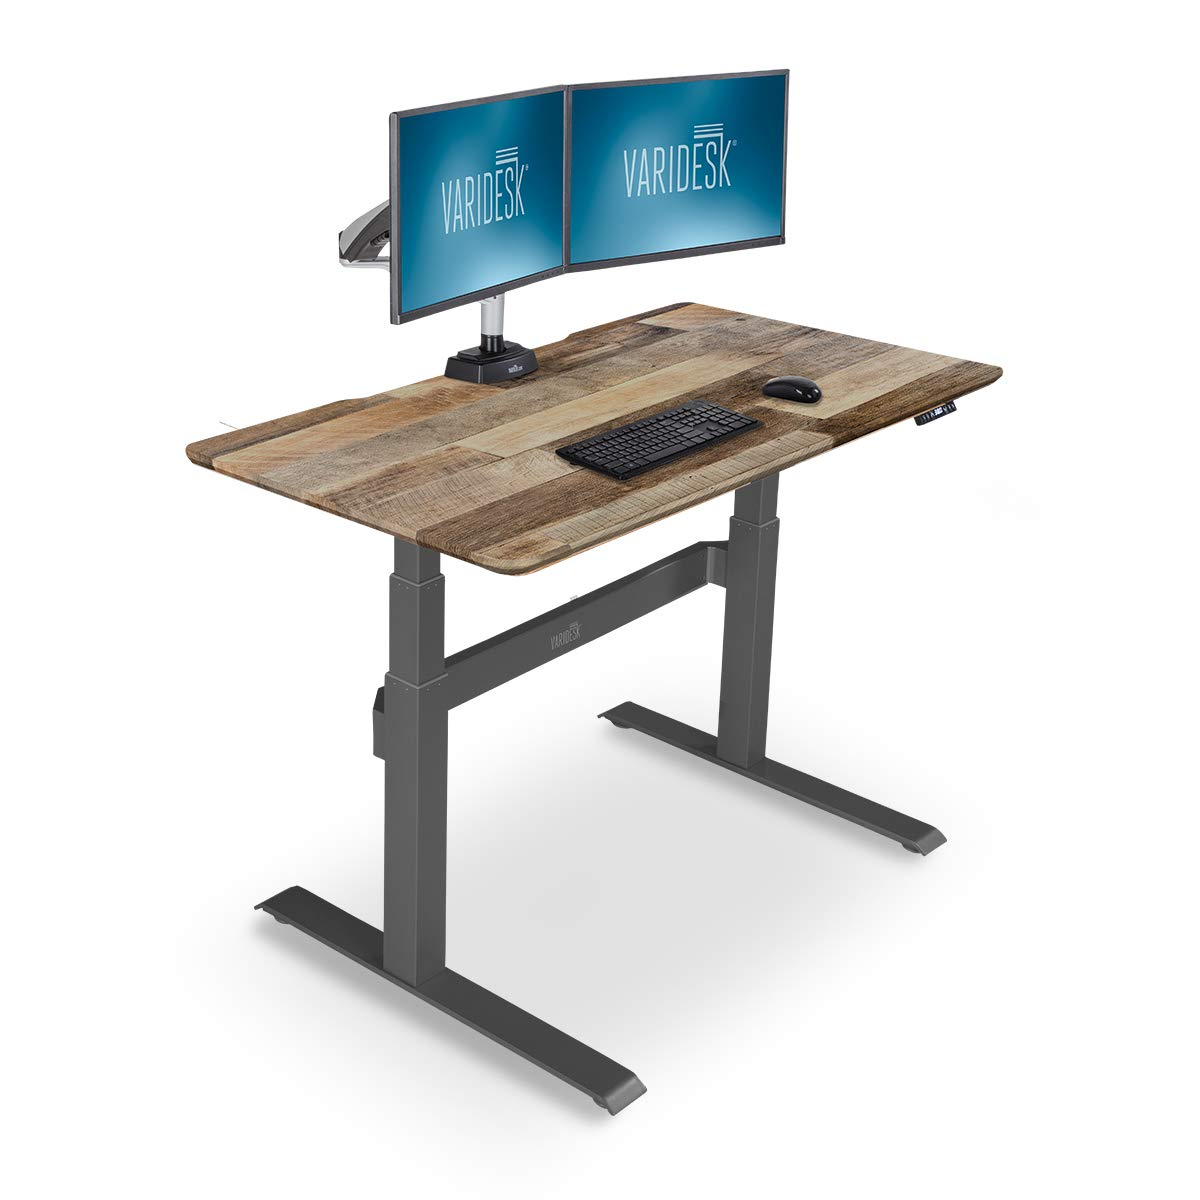 VARIDESK - Full Electric Desk - PRODESK 48 Electric Reclaimed Wood - 3-Button Memory Settings